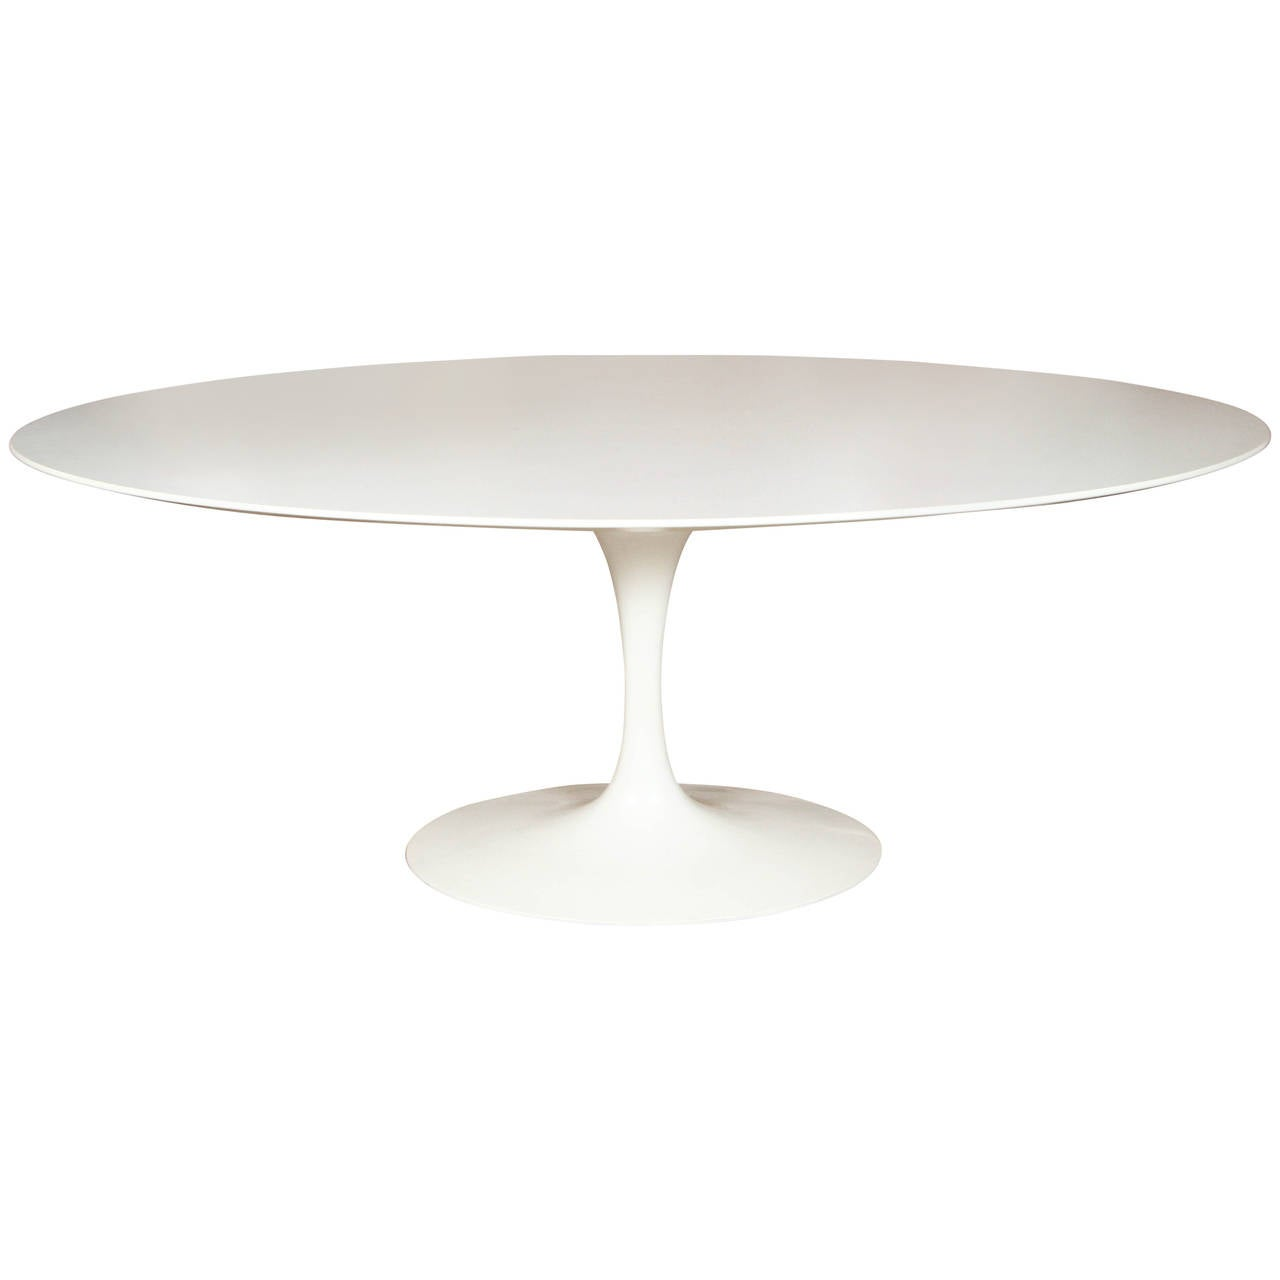 Saarinen oval tulip table at 1stdibs for Tulip dining table